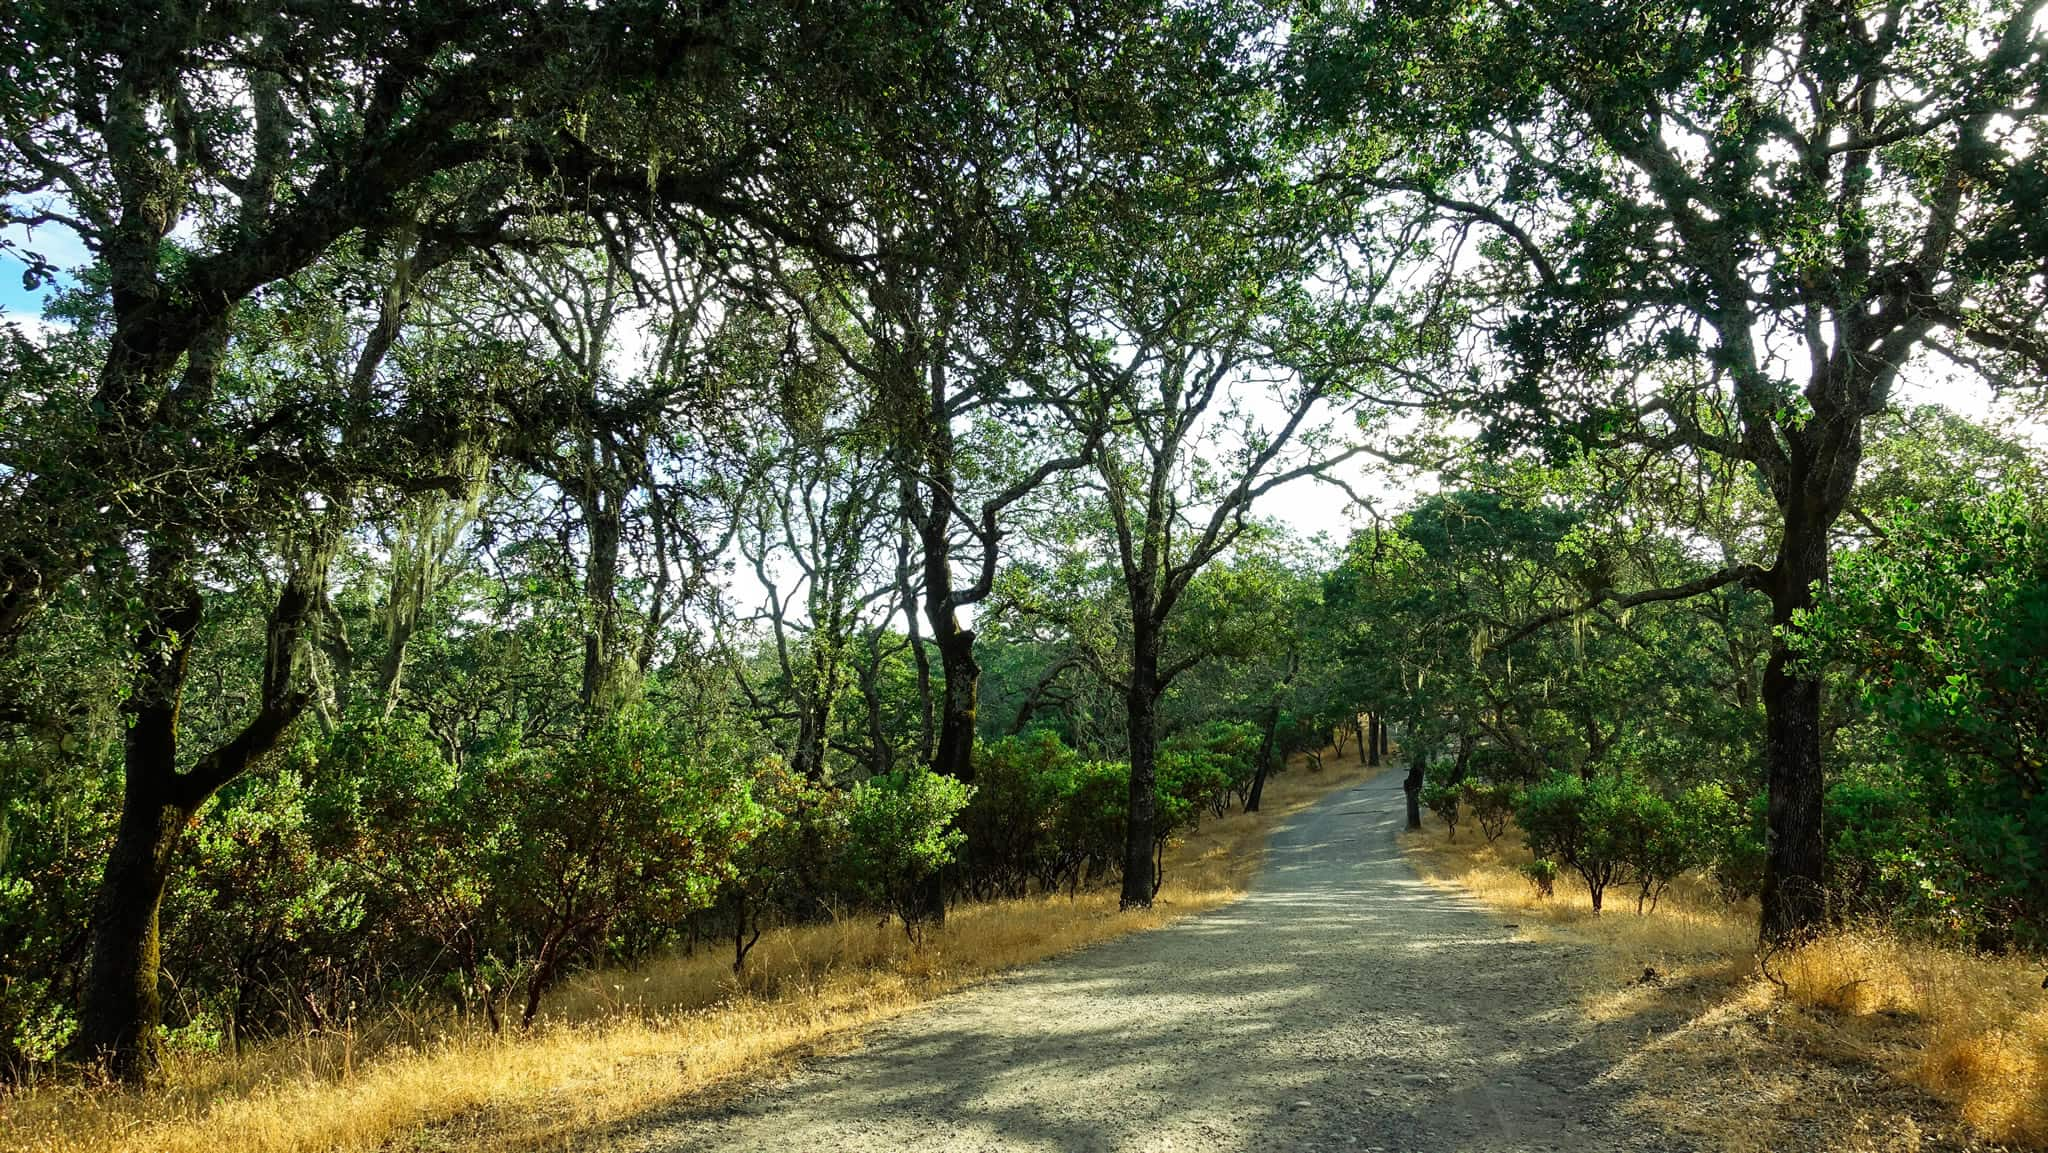 Hiking the open trails of Foothills Park near Healdsburg is a great start to your morning